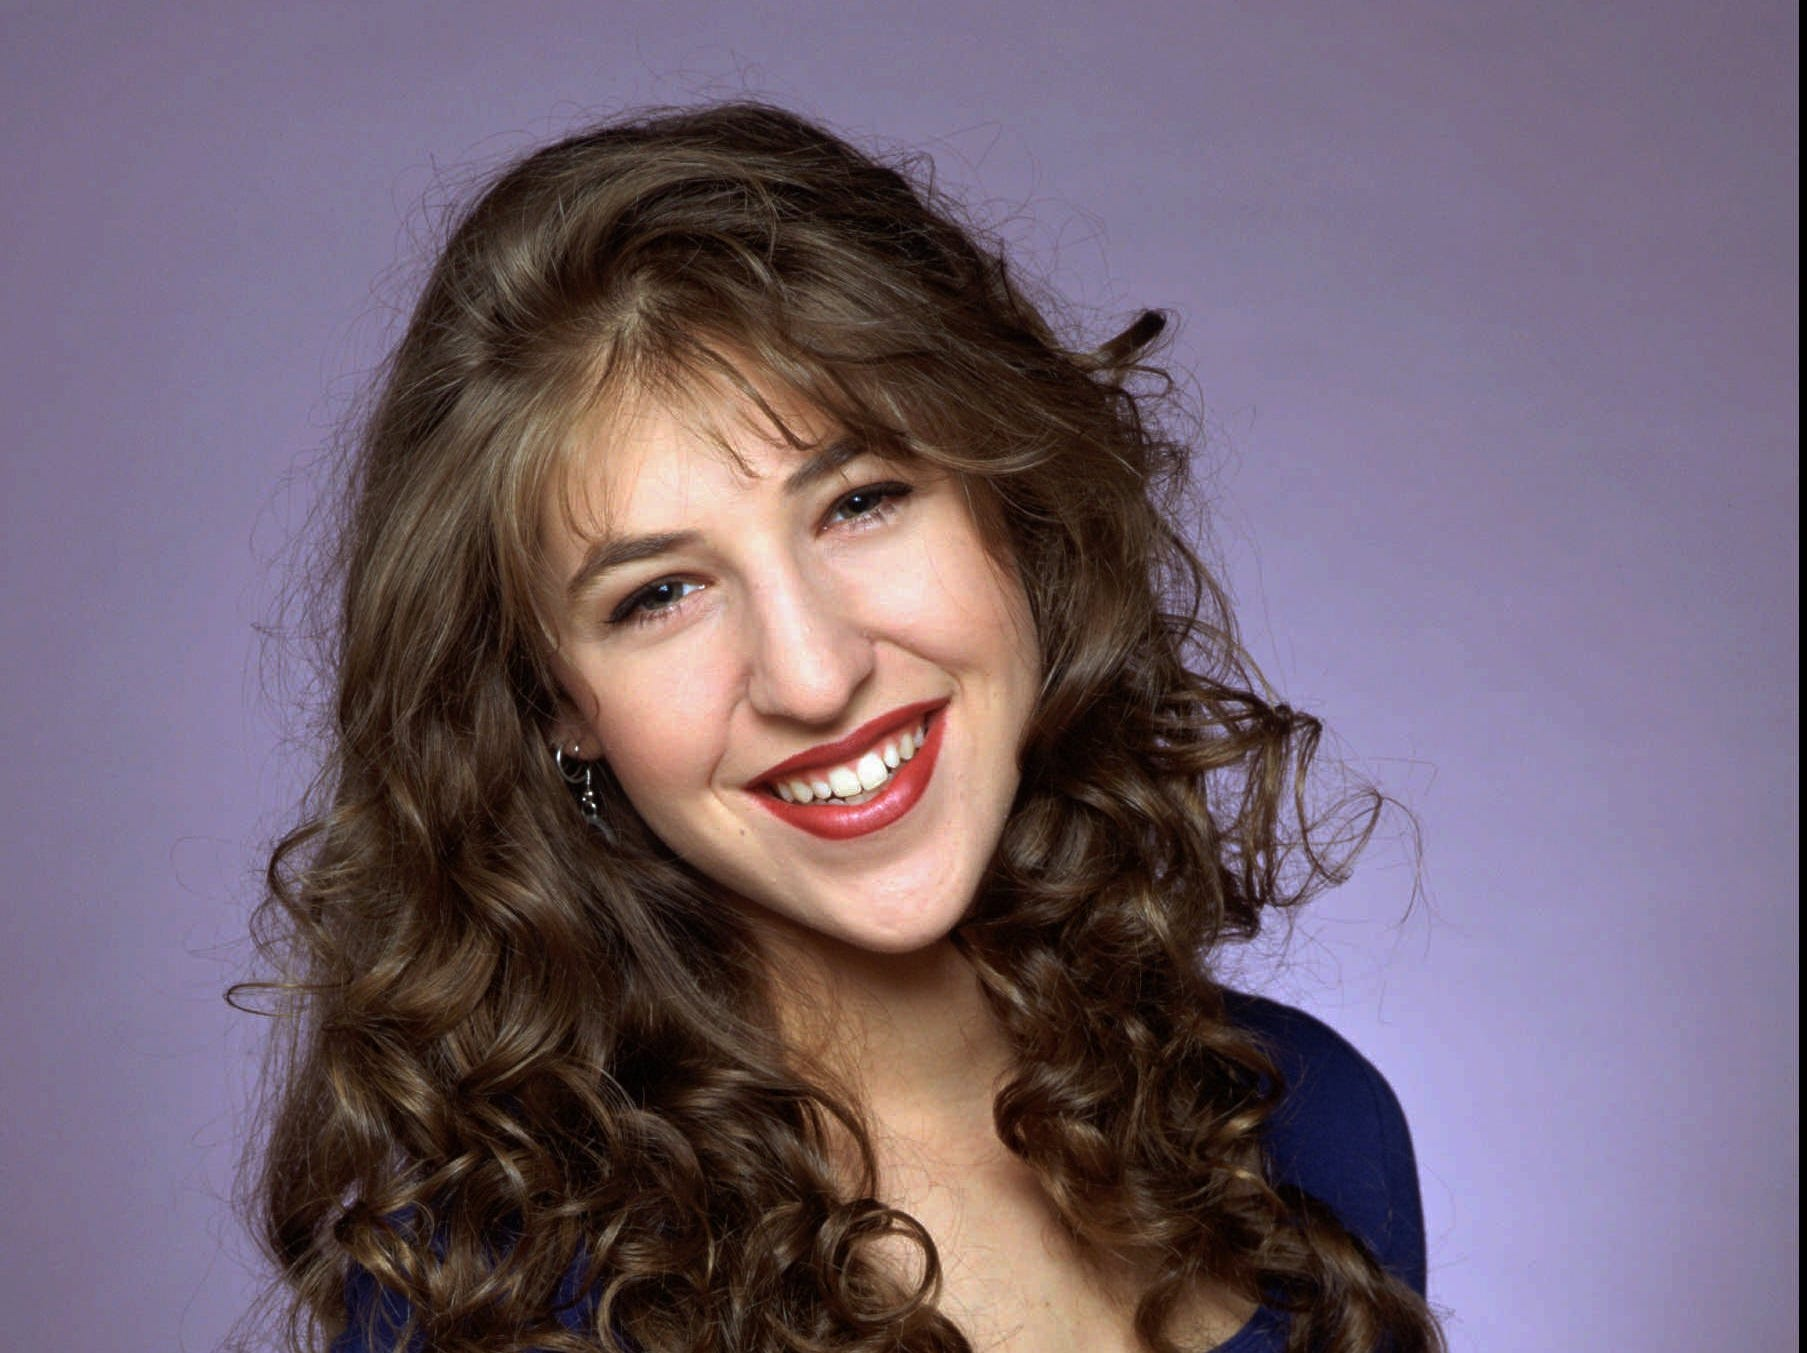 """NBC113 8/23/94 -- 'BLOSSOM'  -- SEASON PREMIERE: Monday, September 26 (8:30-9 p.m. ET) -- PICTURED: Mayim Bialik -- 'BLOSSOM' RETURNS FOR ITS FIFTH SEASON -- """"Blossom,"""" is a half-hour comedy about a family coping with the joys and frustrations that comewith some of life's milstones -- marriage, motherhood, leaving home and that all-important senior year in high school.  The show was the top-rated program last year in its time period  among adults 18-34; women and adults 18-49; and kids and teens. PHOTOBY Mario Casilli. ORG XMIT: NBC113"""